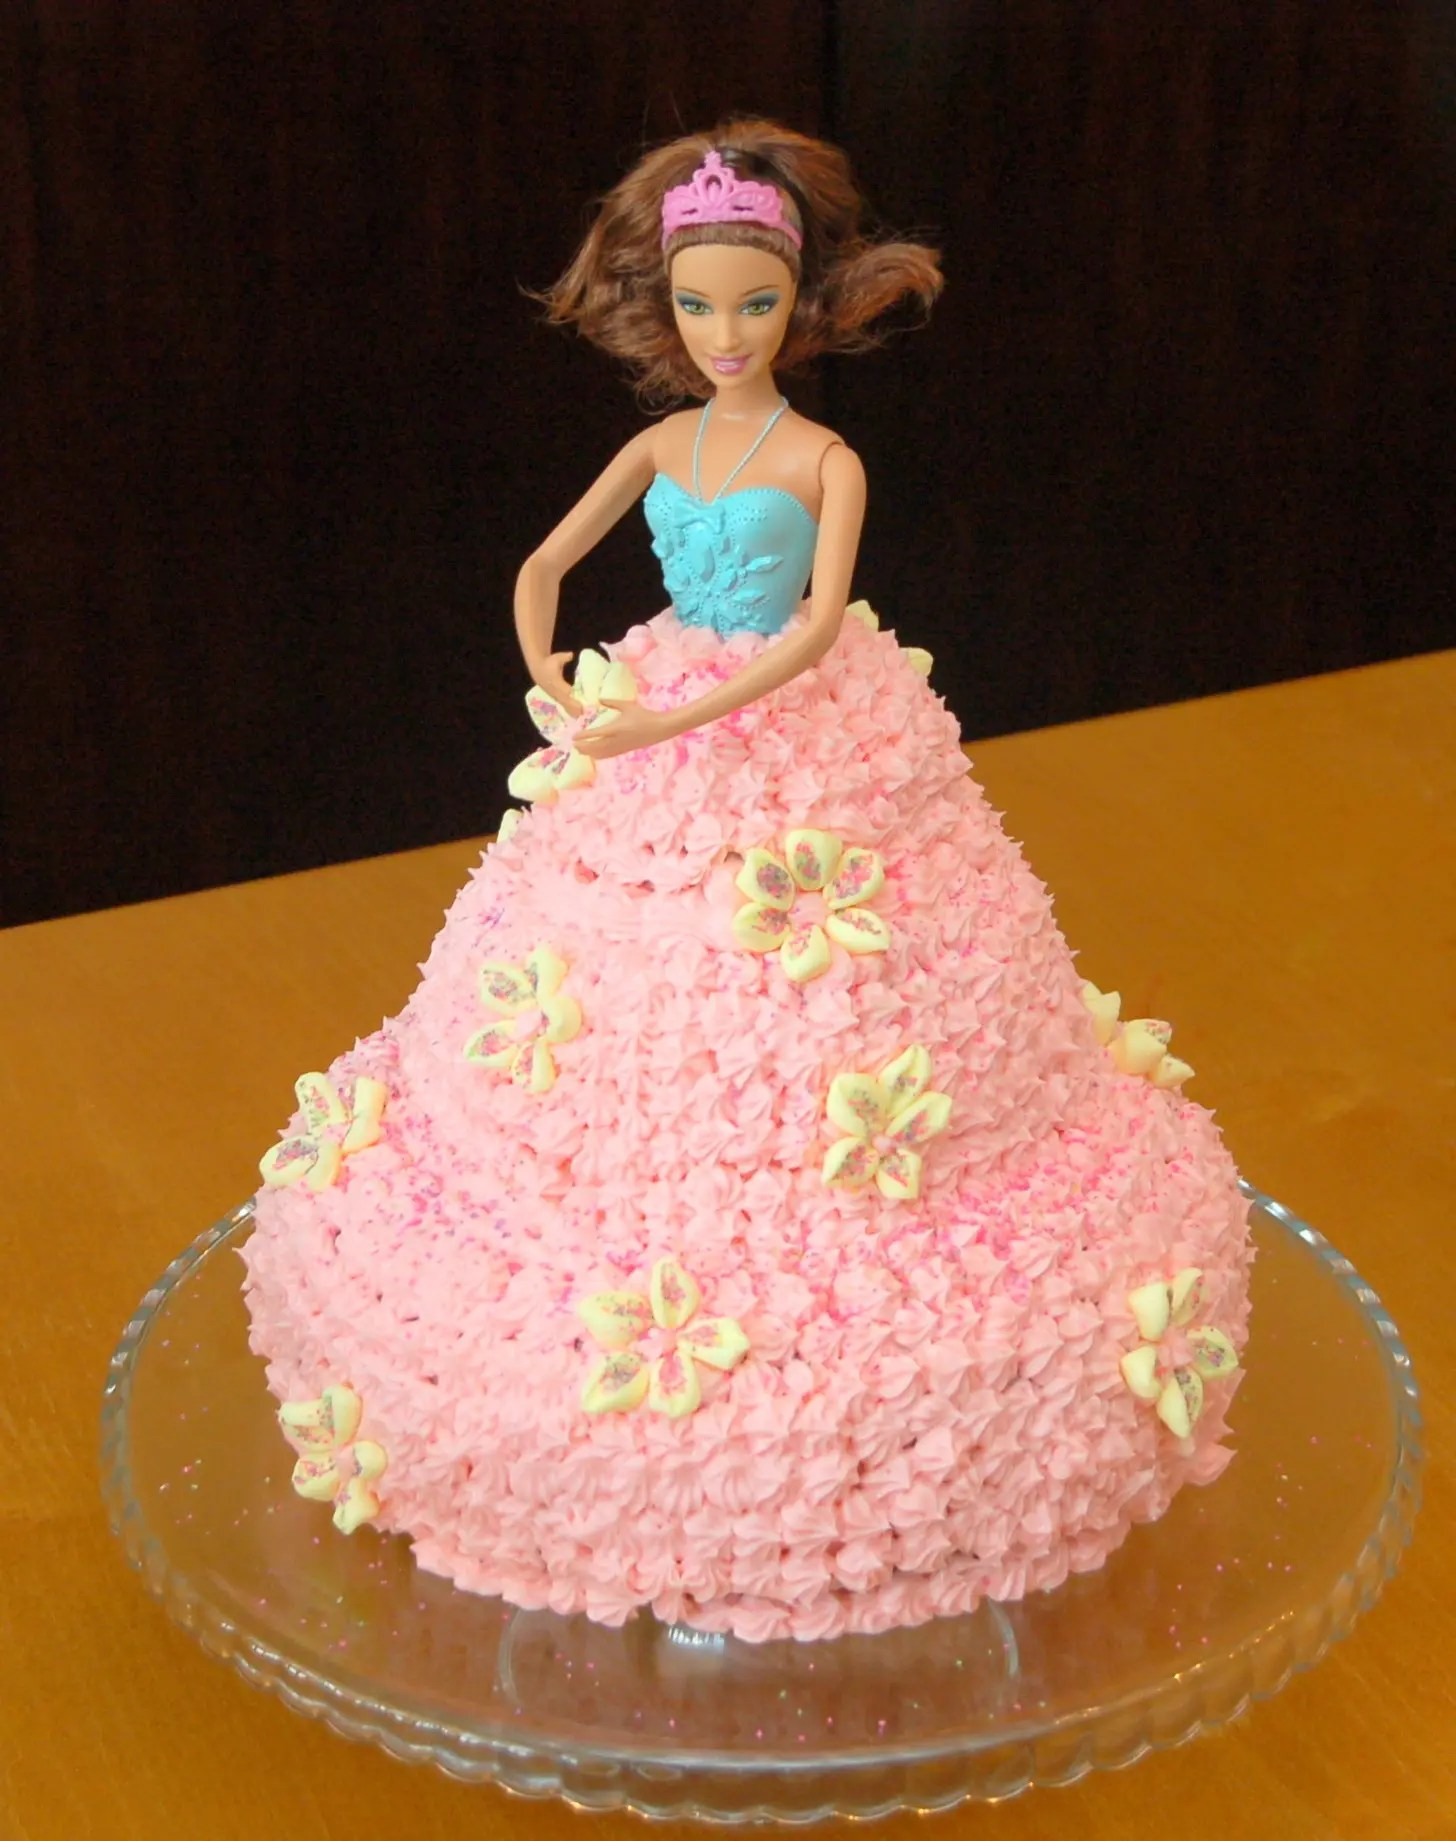 How to make a Barbie Cake – It's easier than you think!